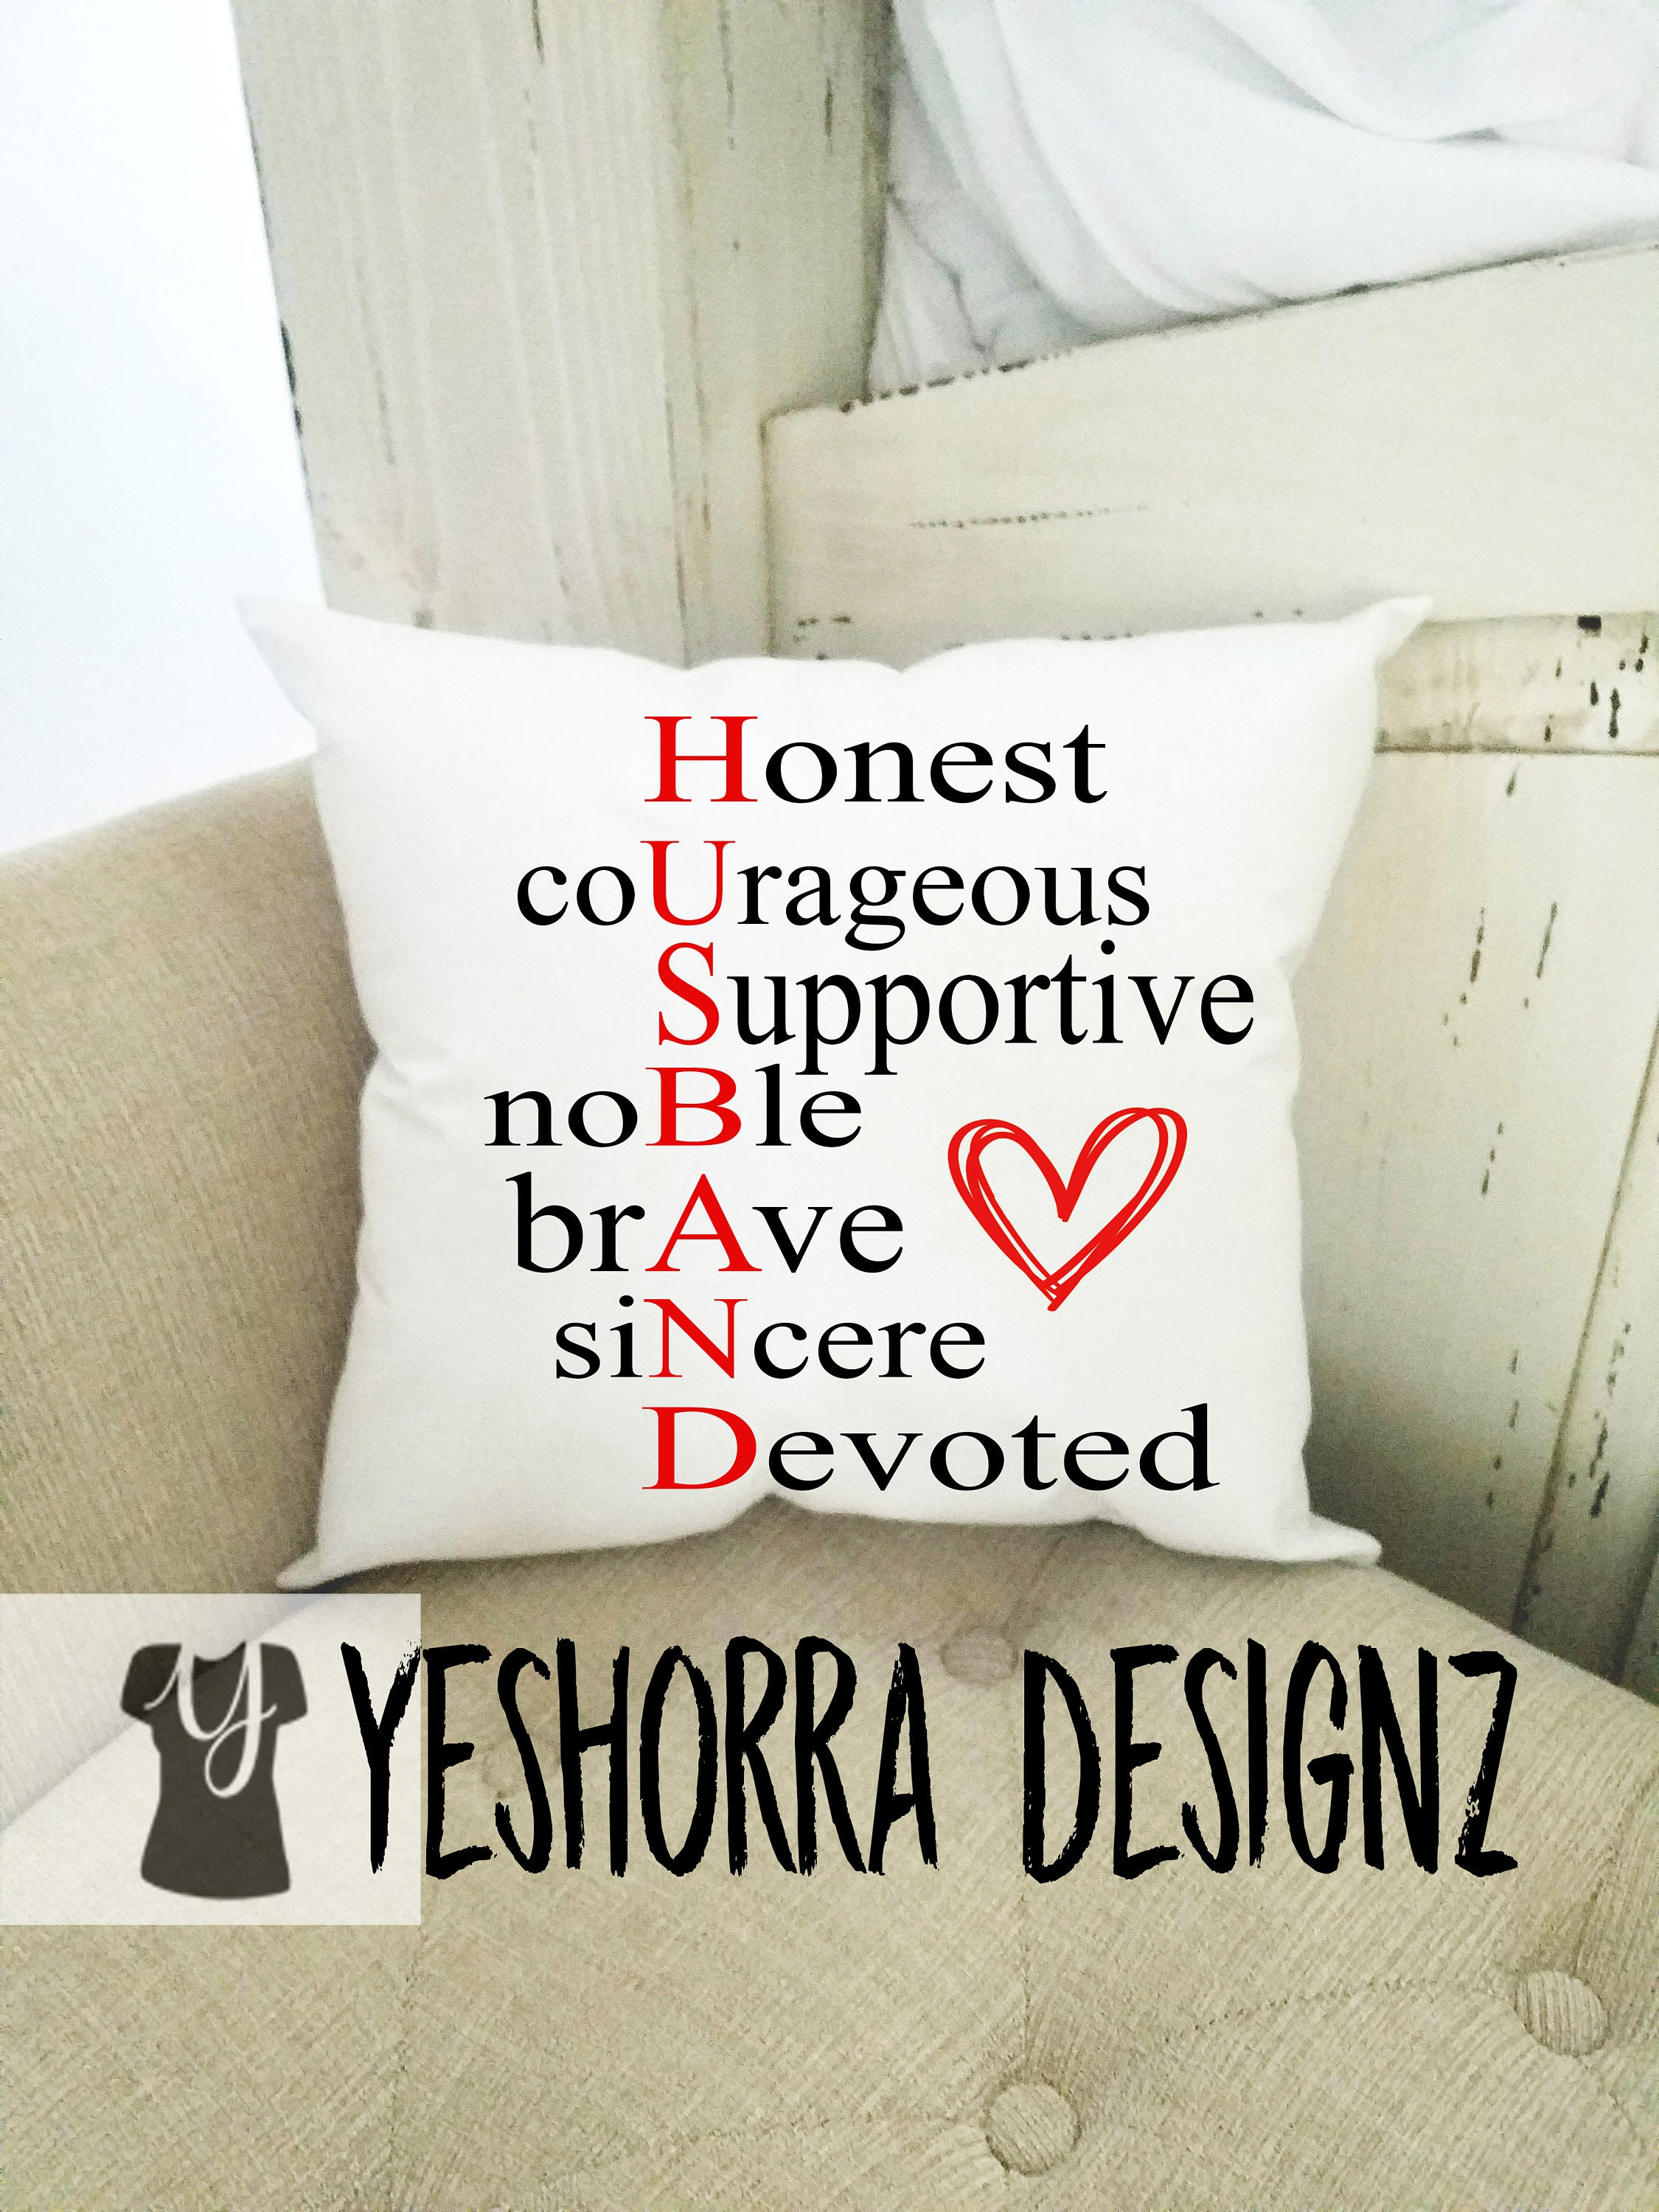 valentines day gift for him gift for husband newly wed gift groom gift husband pillow gifts for men gifts for him wedding gift